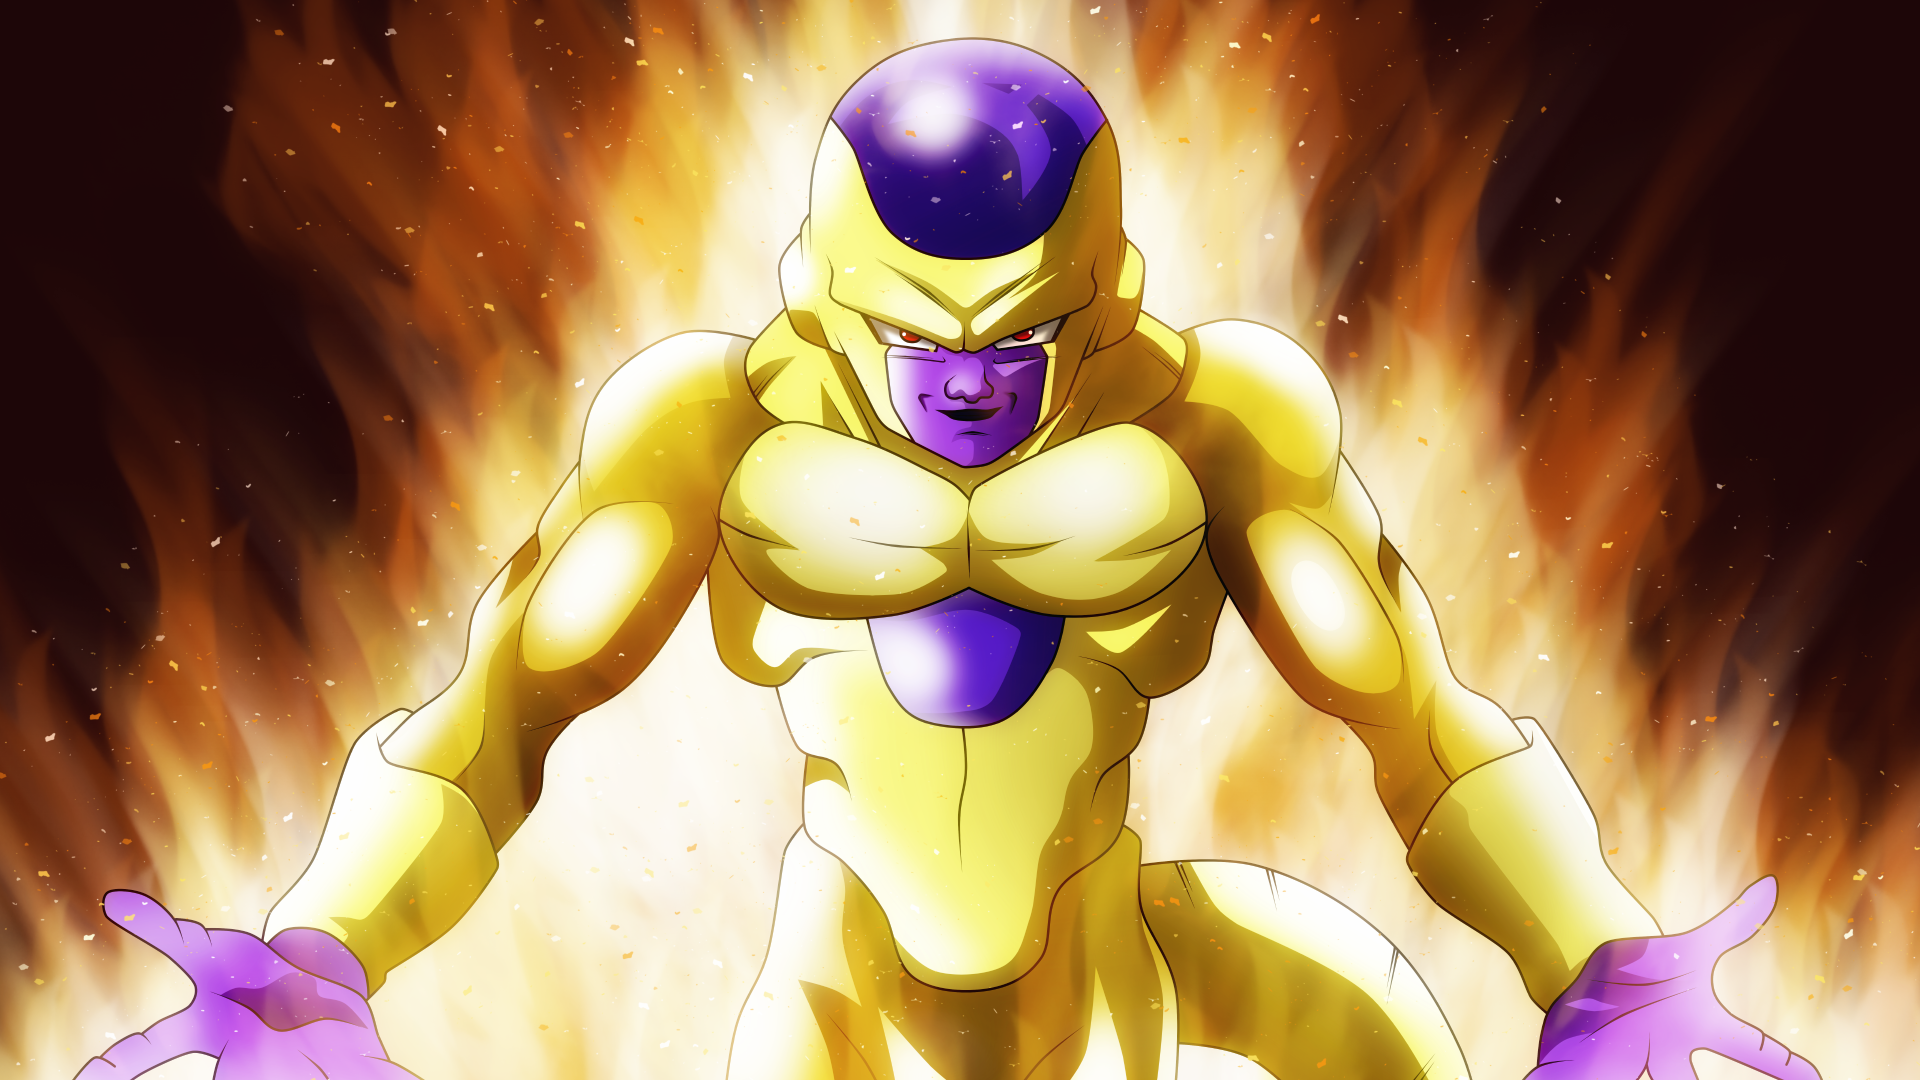 Free Download Dragon Ball Super 4k Ultra Hd Wallpaper And